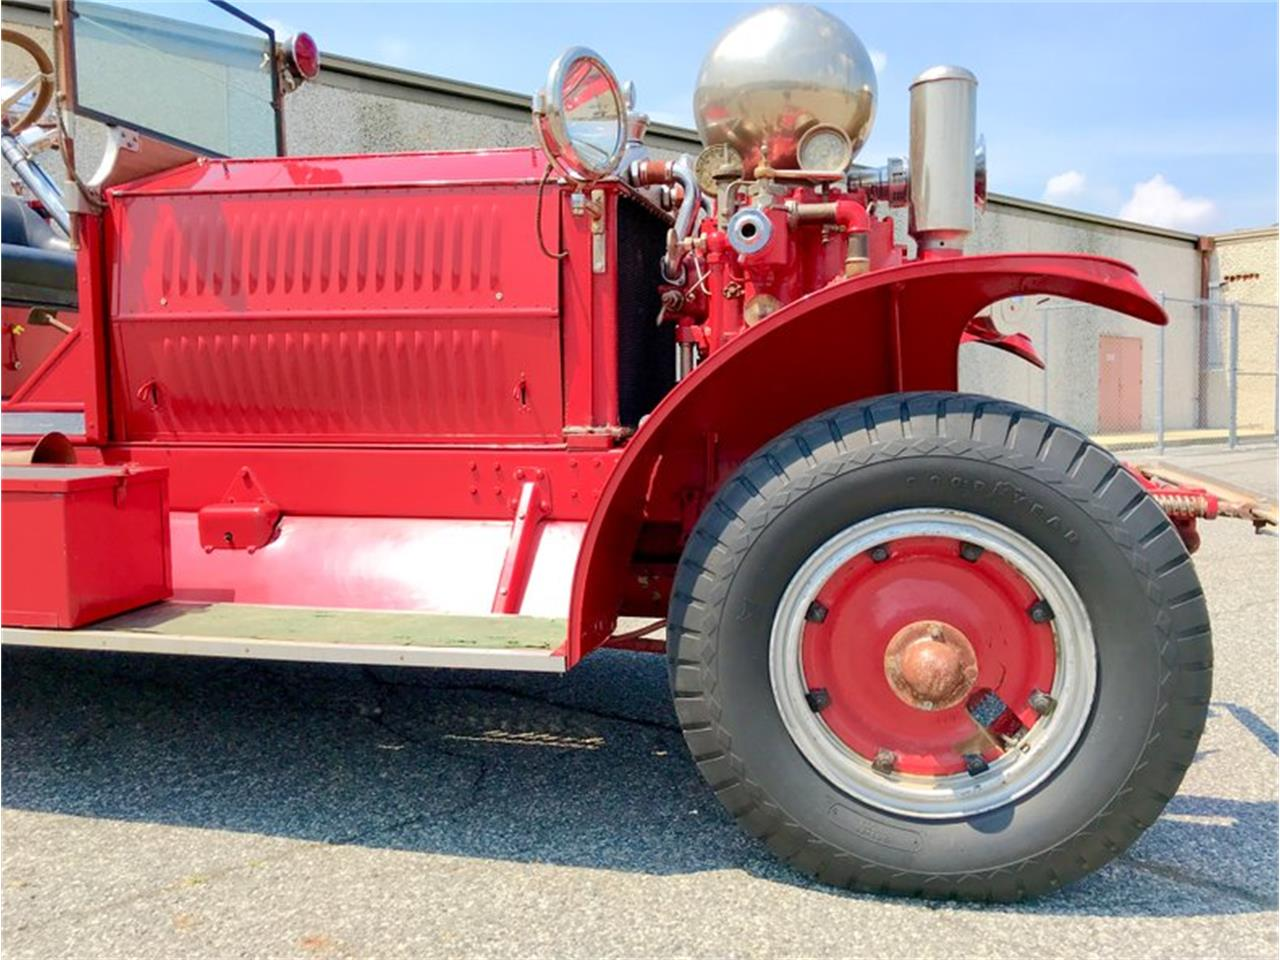 1920 Ahrens-Fox Fire Truck for sale in Morgantown, PA – photo 15